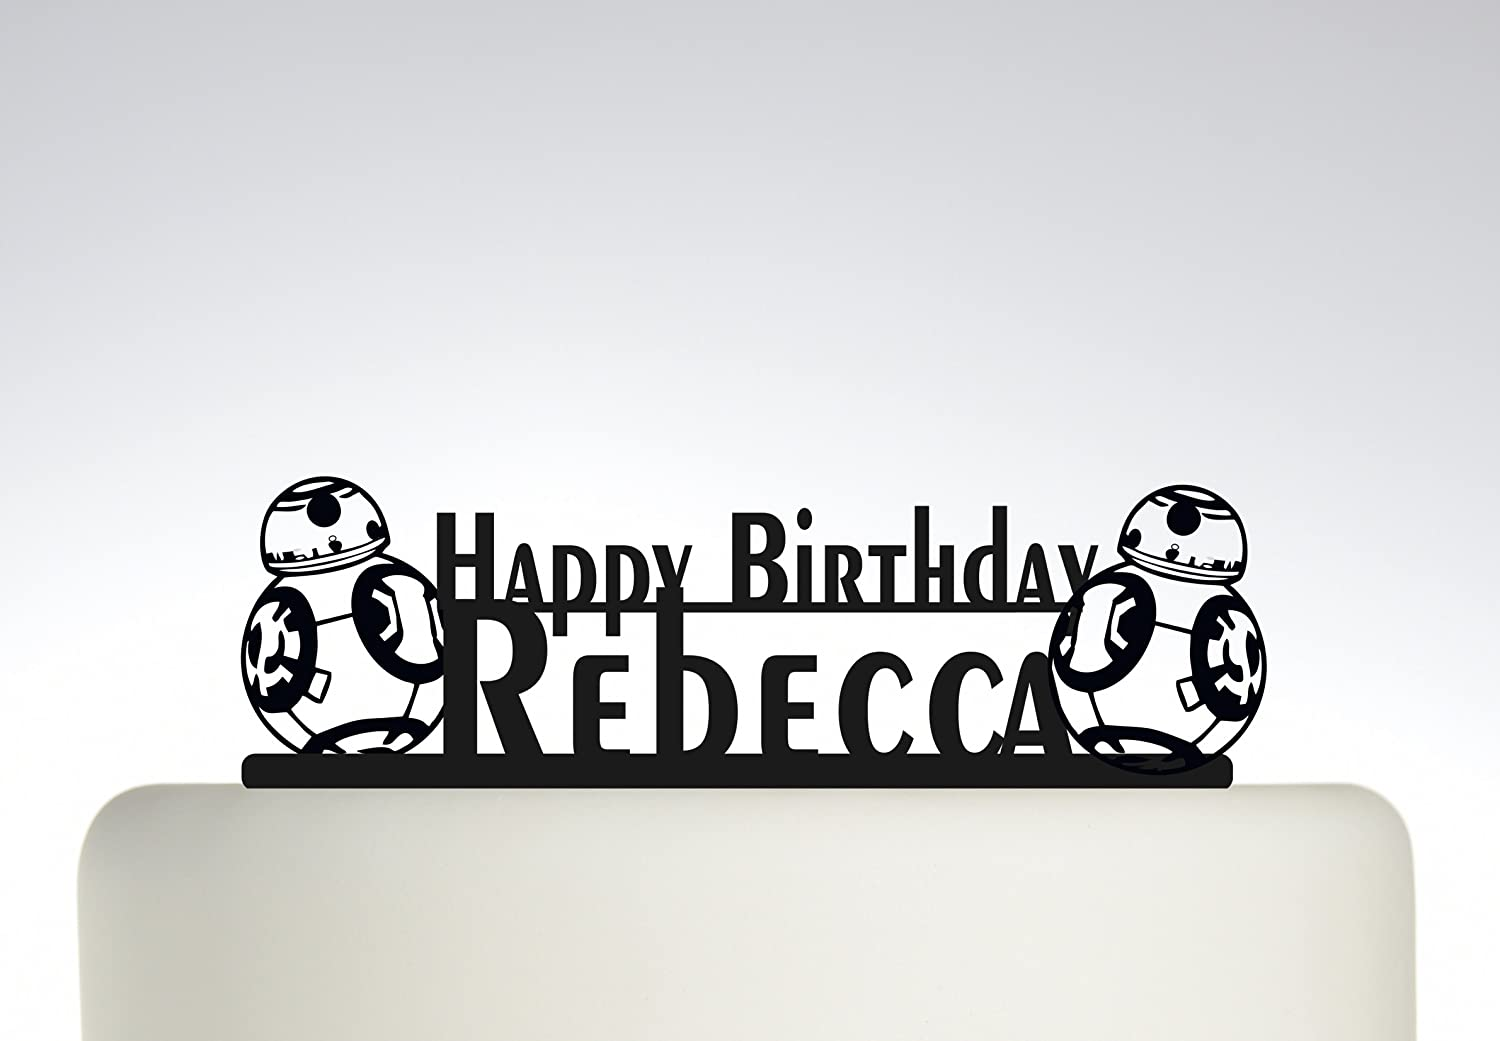 Birthday Cake topper Personalised Happy Birthday YOUR NAME Star Wars BB8. Ideal birthday cake decoration, birthday party Acrylic cake topper, Available in Gold Mirror, Gold Sparkle, Silver Mirror, Silver Sparkle, Bronze Mirror, Black,Blue, Pink, Red,Purple